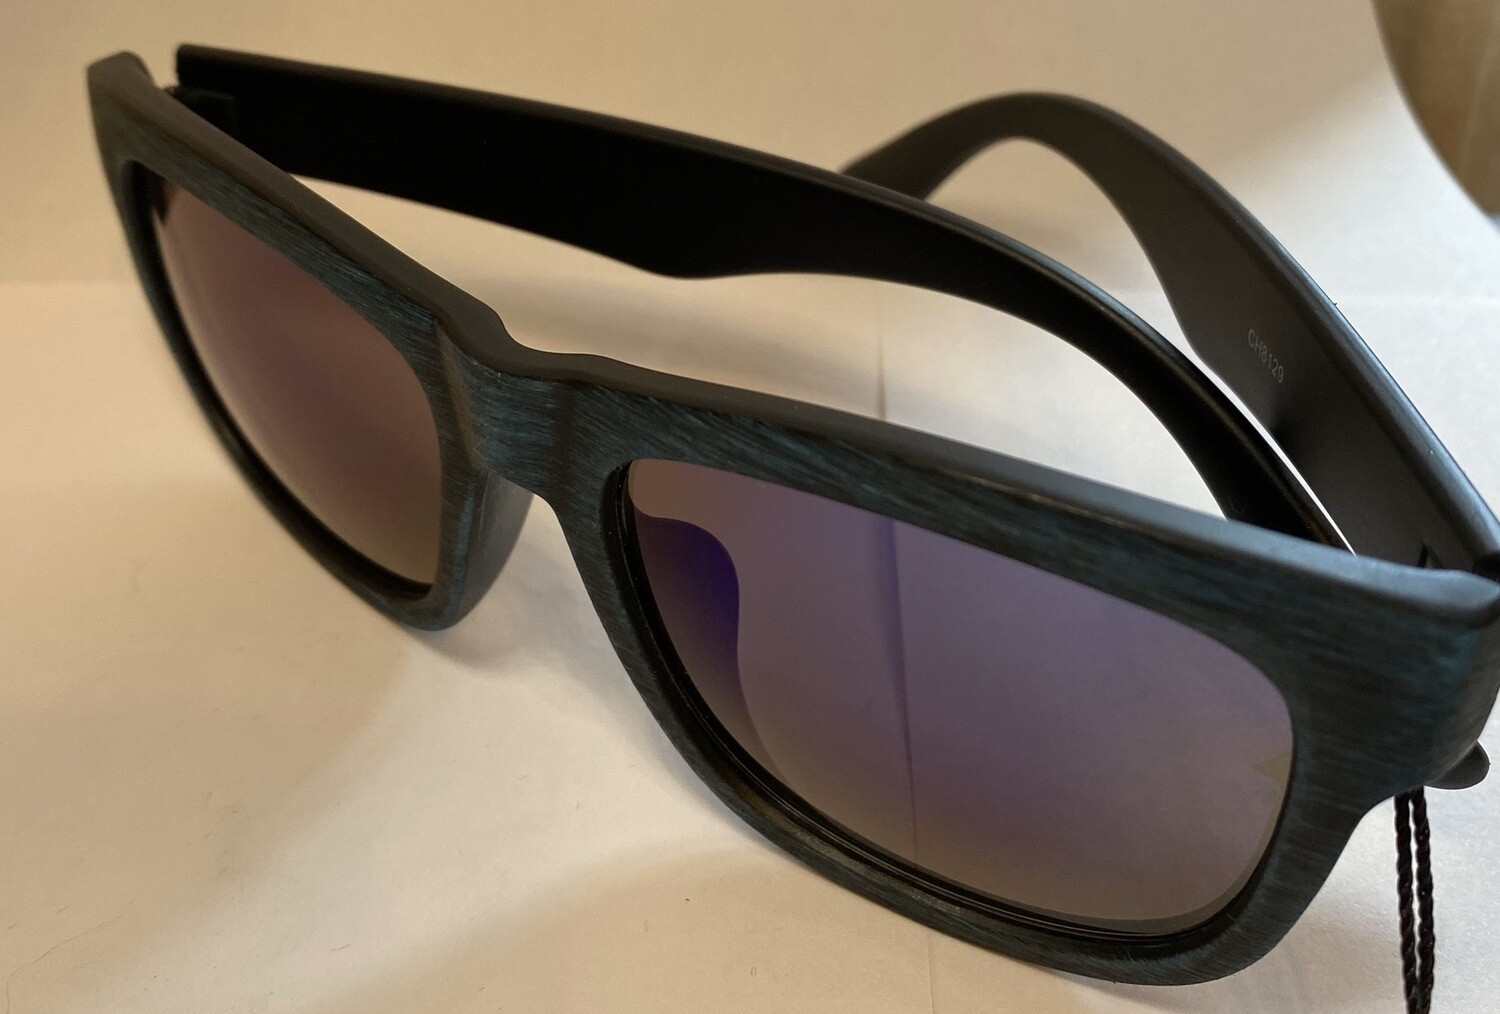 Sunglasses Reflective Blue Wood Finish